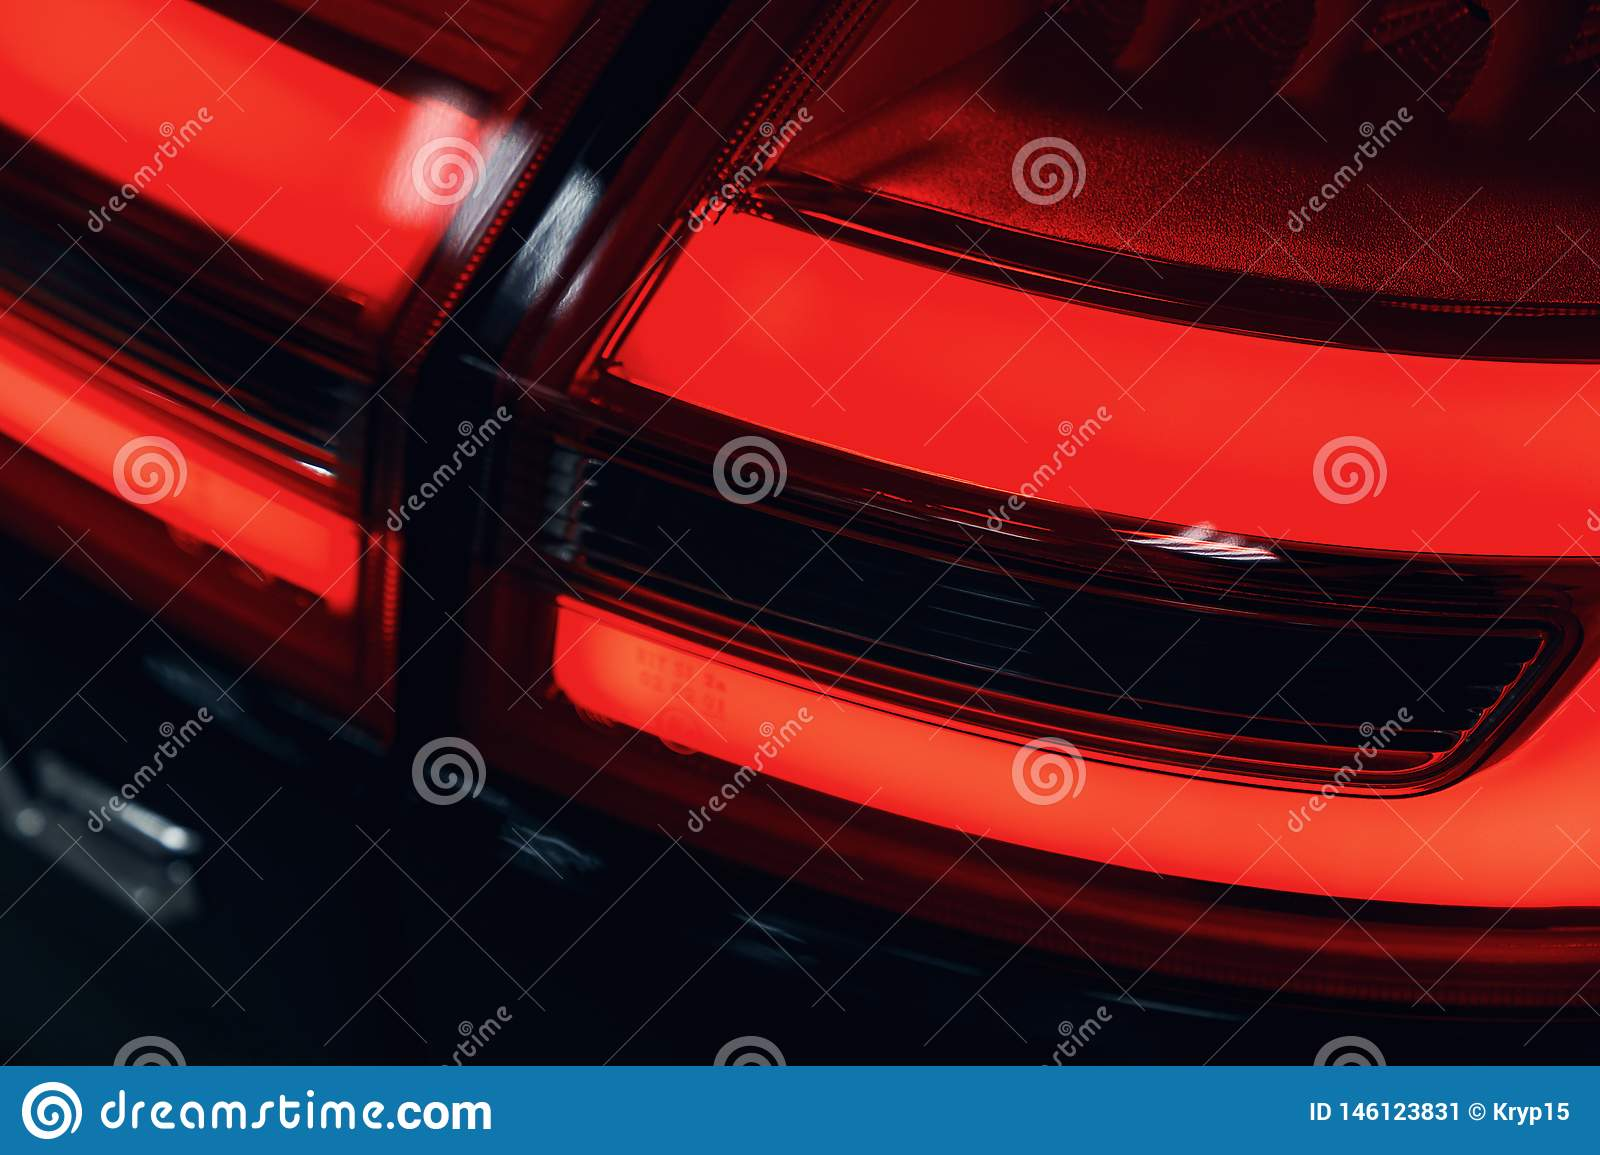 Close-up of the rear light of a modern car. Led optics